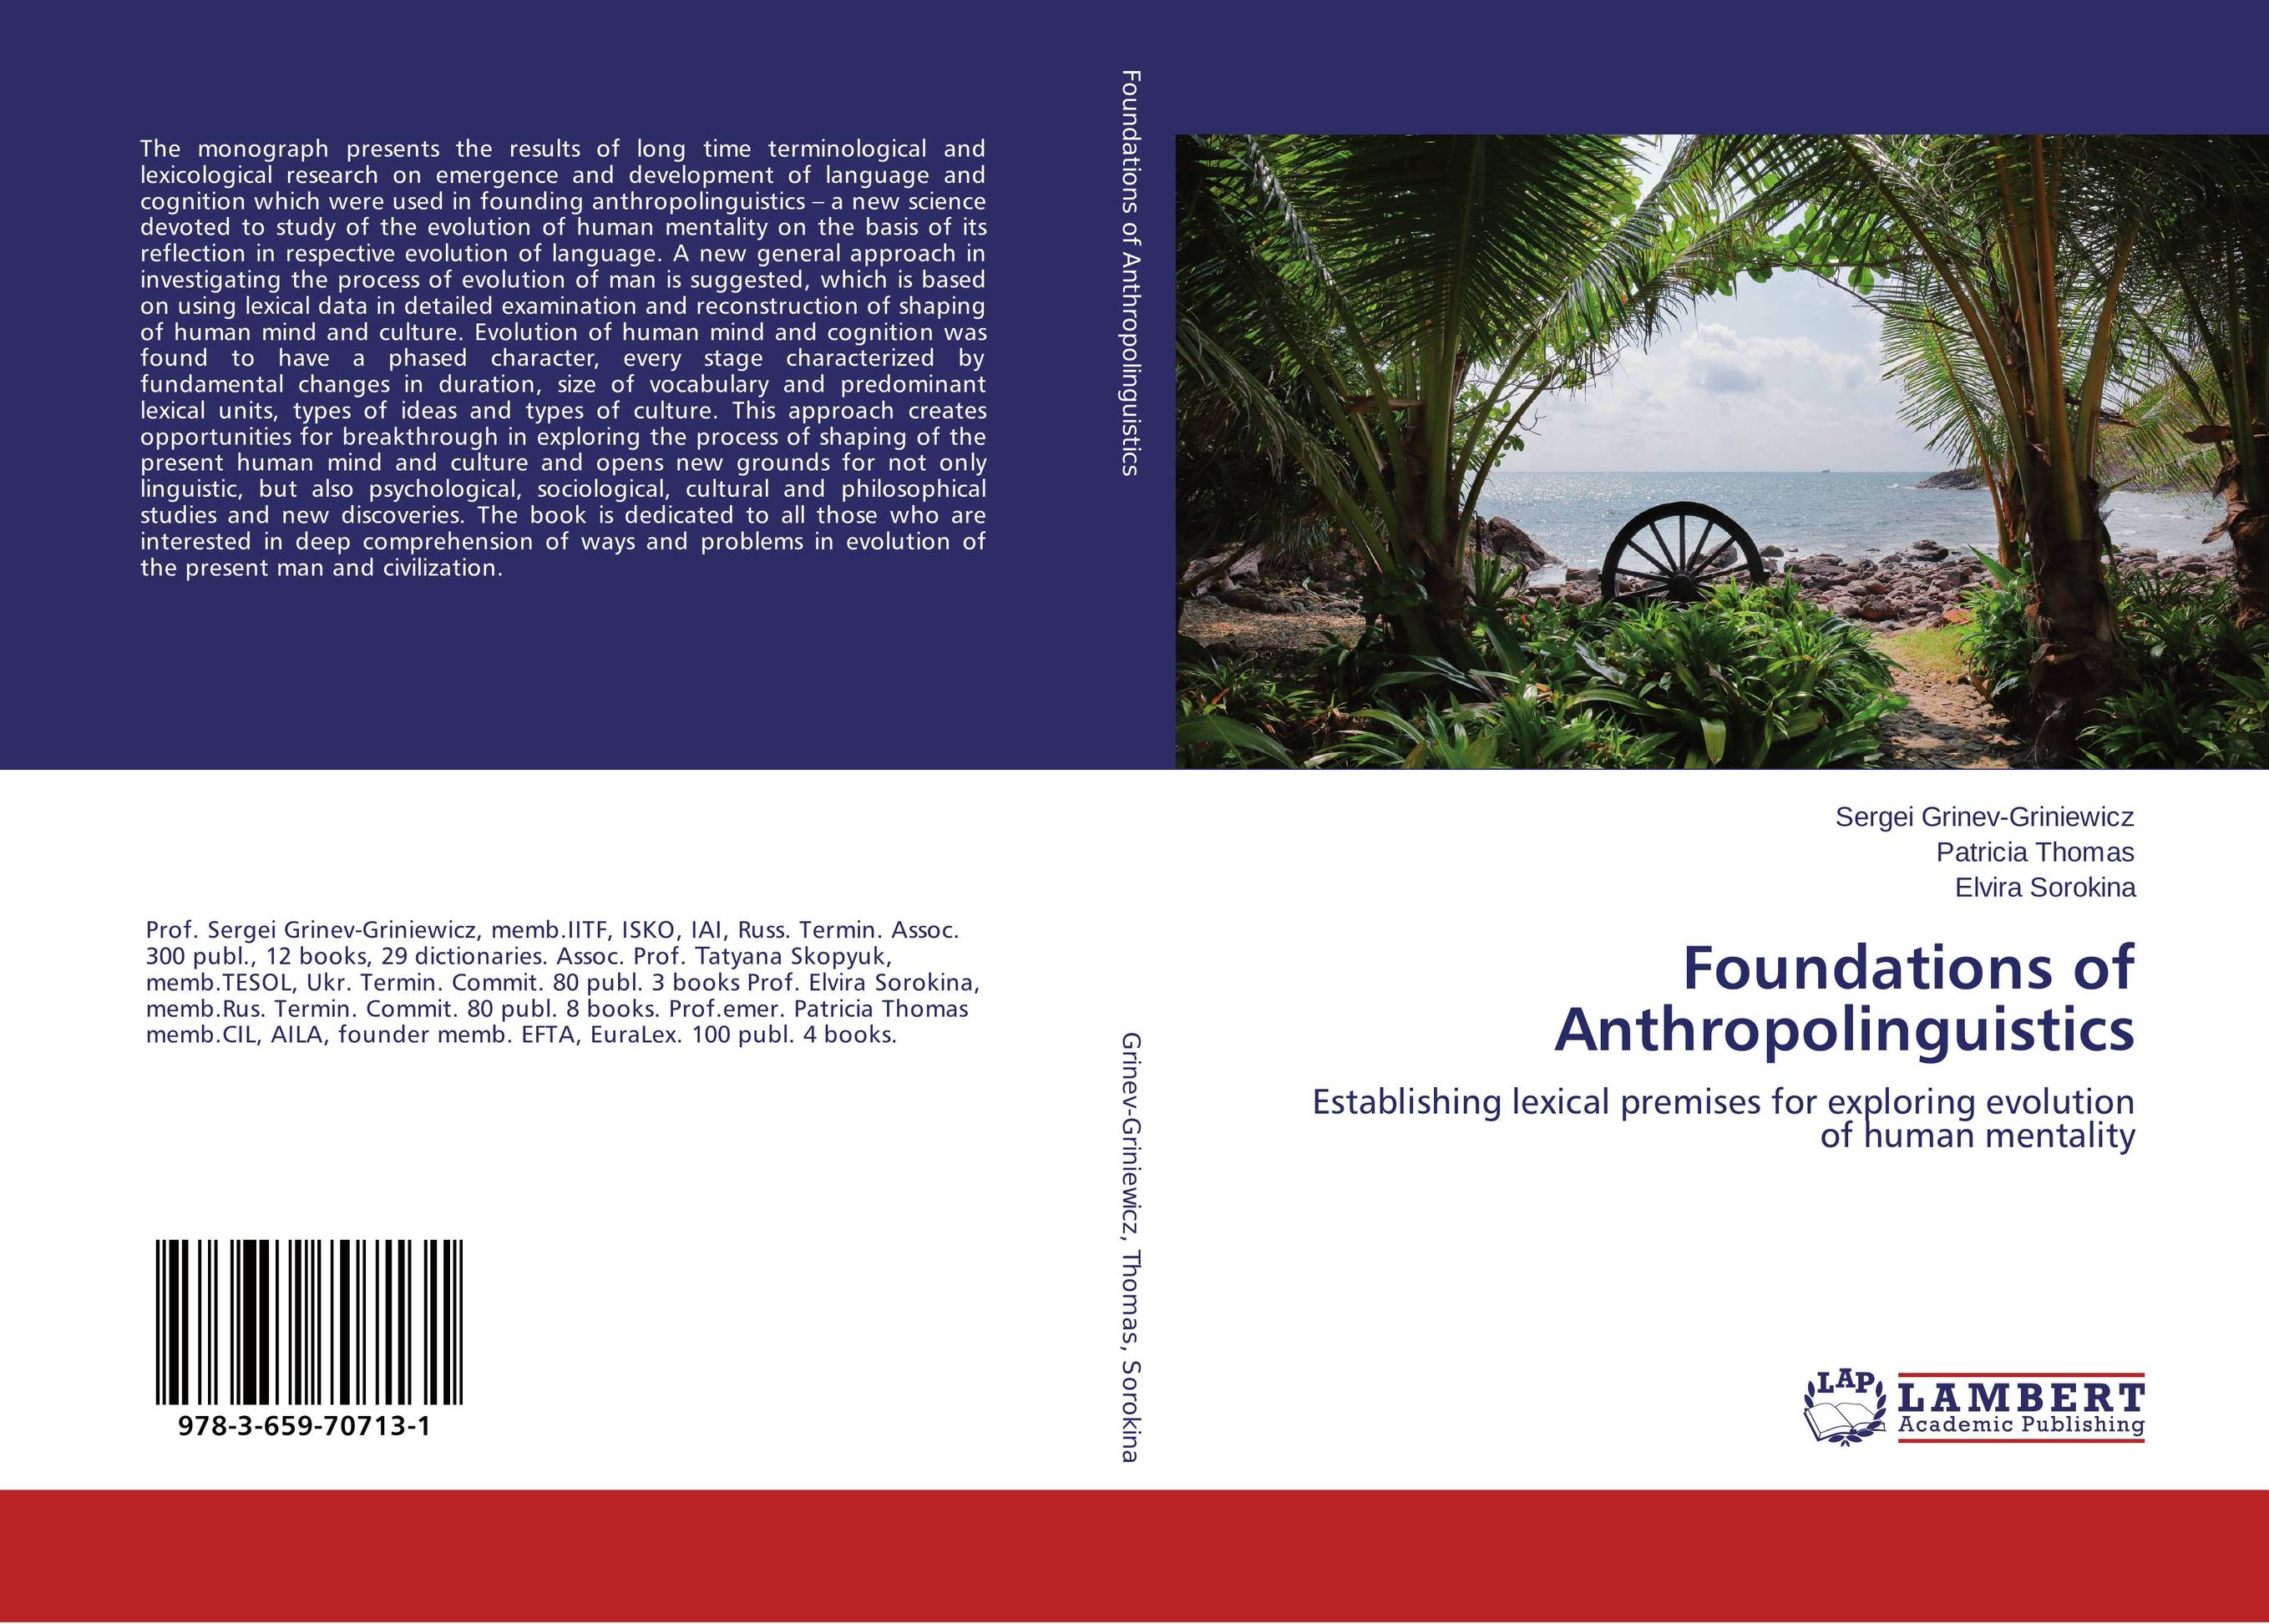 Foundations of Anthropolinguistics e hutchins culture and inference – a trobriand case study